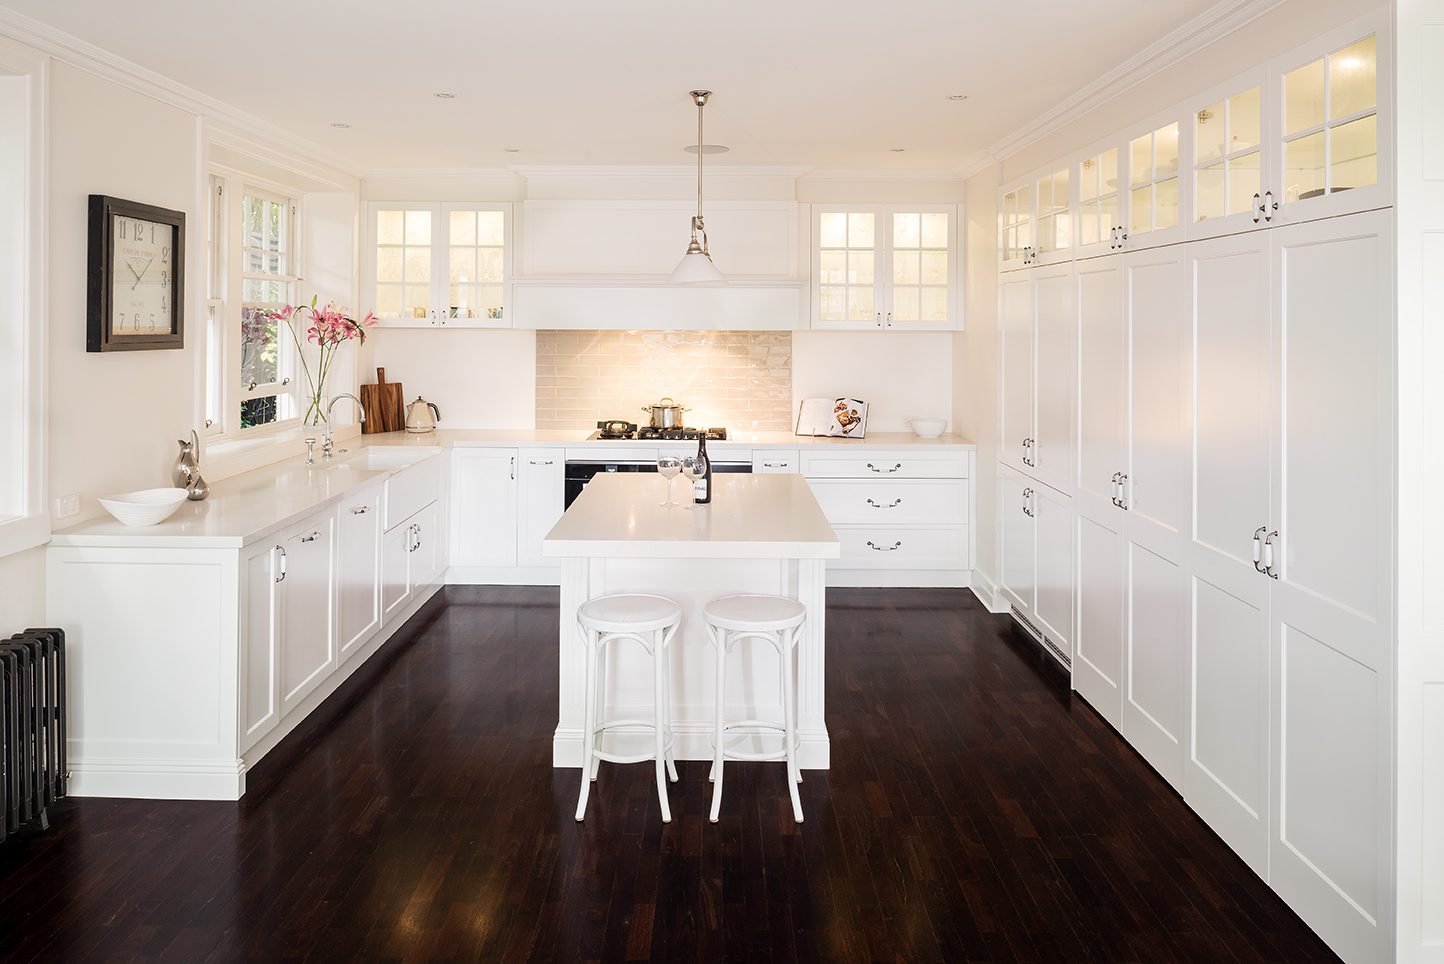 How Much Does A Kitchen Renovation Cost? - Rosemount Kitchens